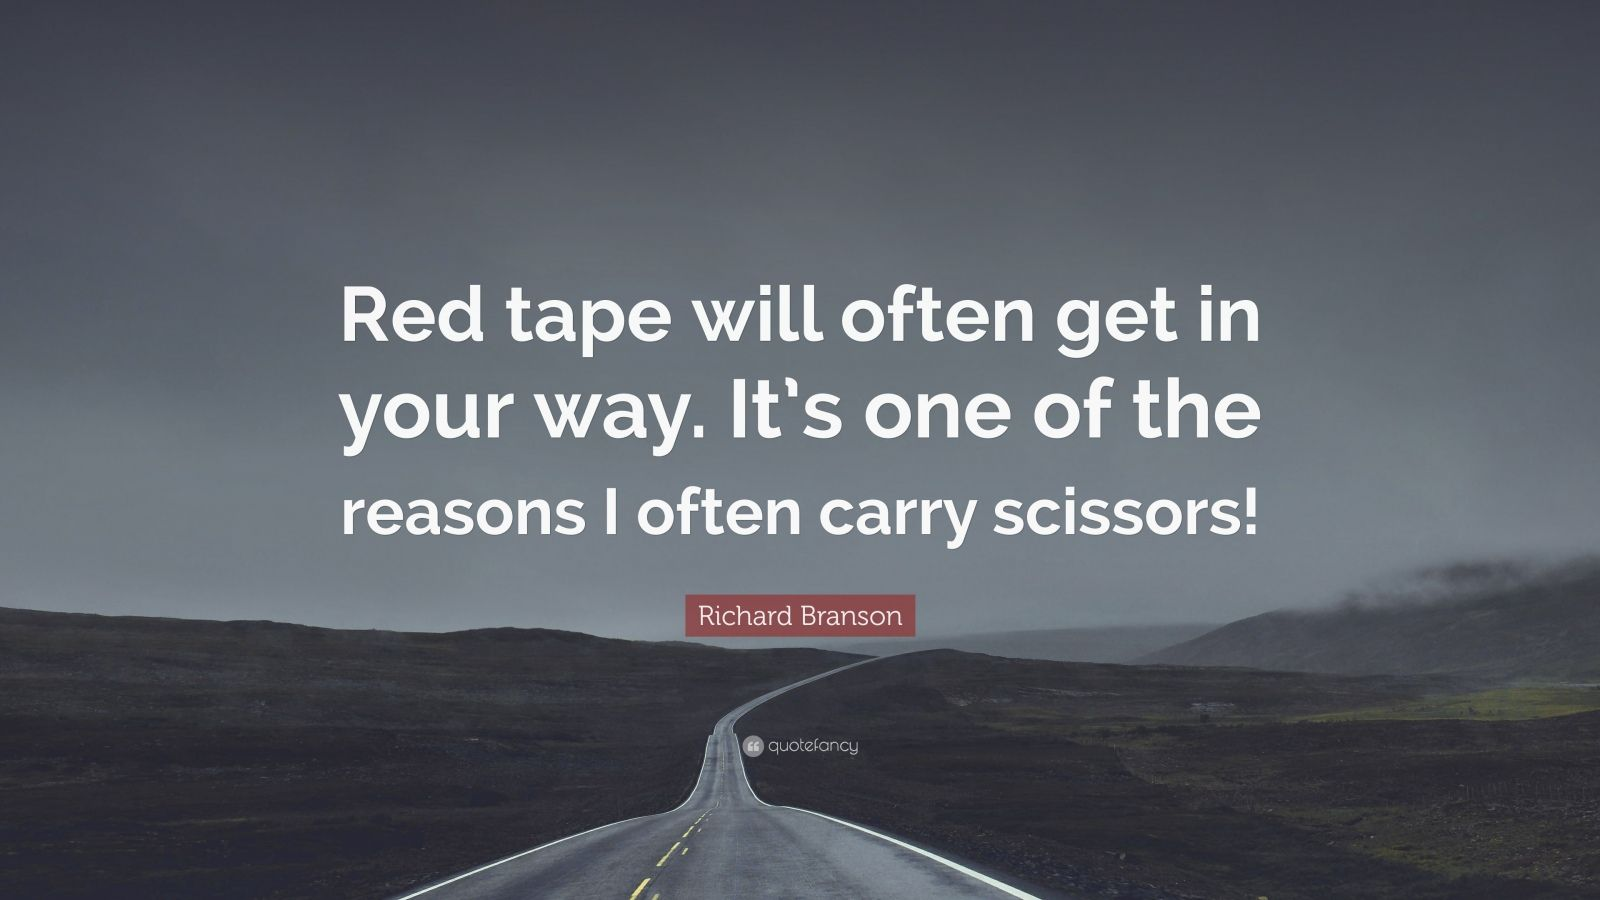 """Richard Branson Quote: """"Red tape will often get in your way. It's one of the reasons I often carry scissors!"""""""